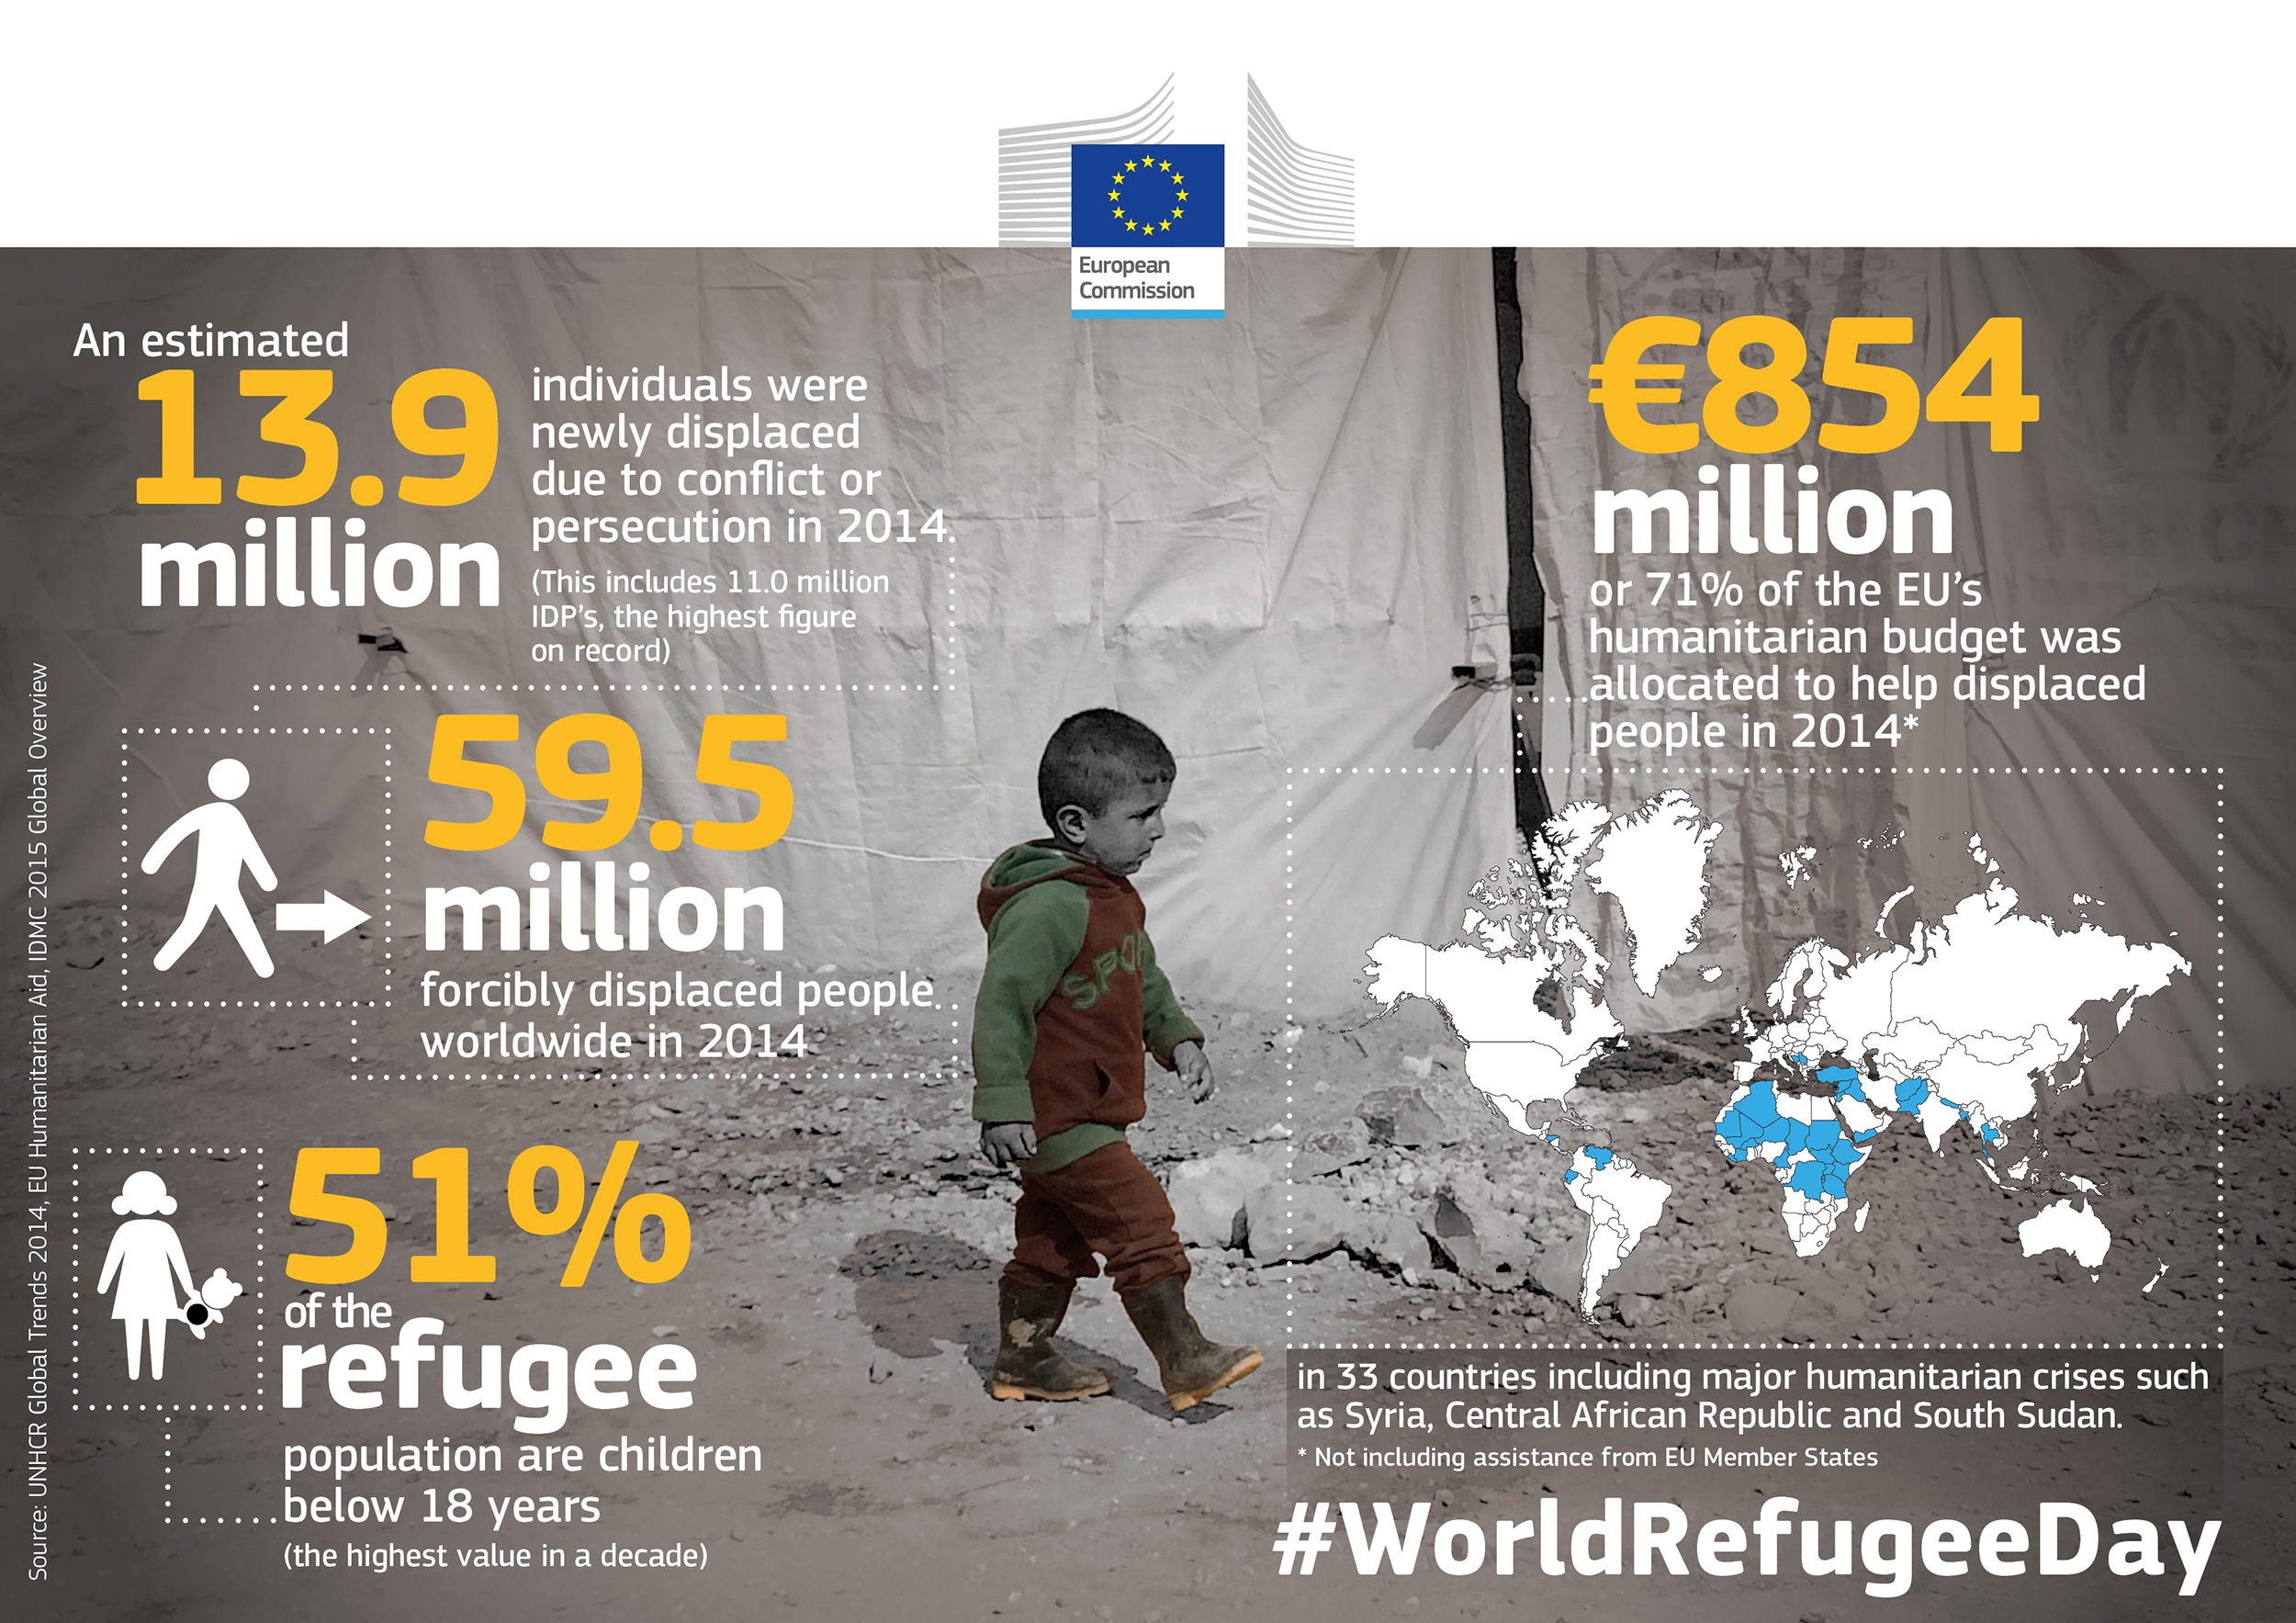 the problem of refugees worldwide Seven proposed solutions for the eu refugee crisis from welcoming more asylum seekers to buying an island for them, here are the top ideas being mooted for tackling the migrant crisis.